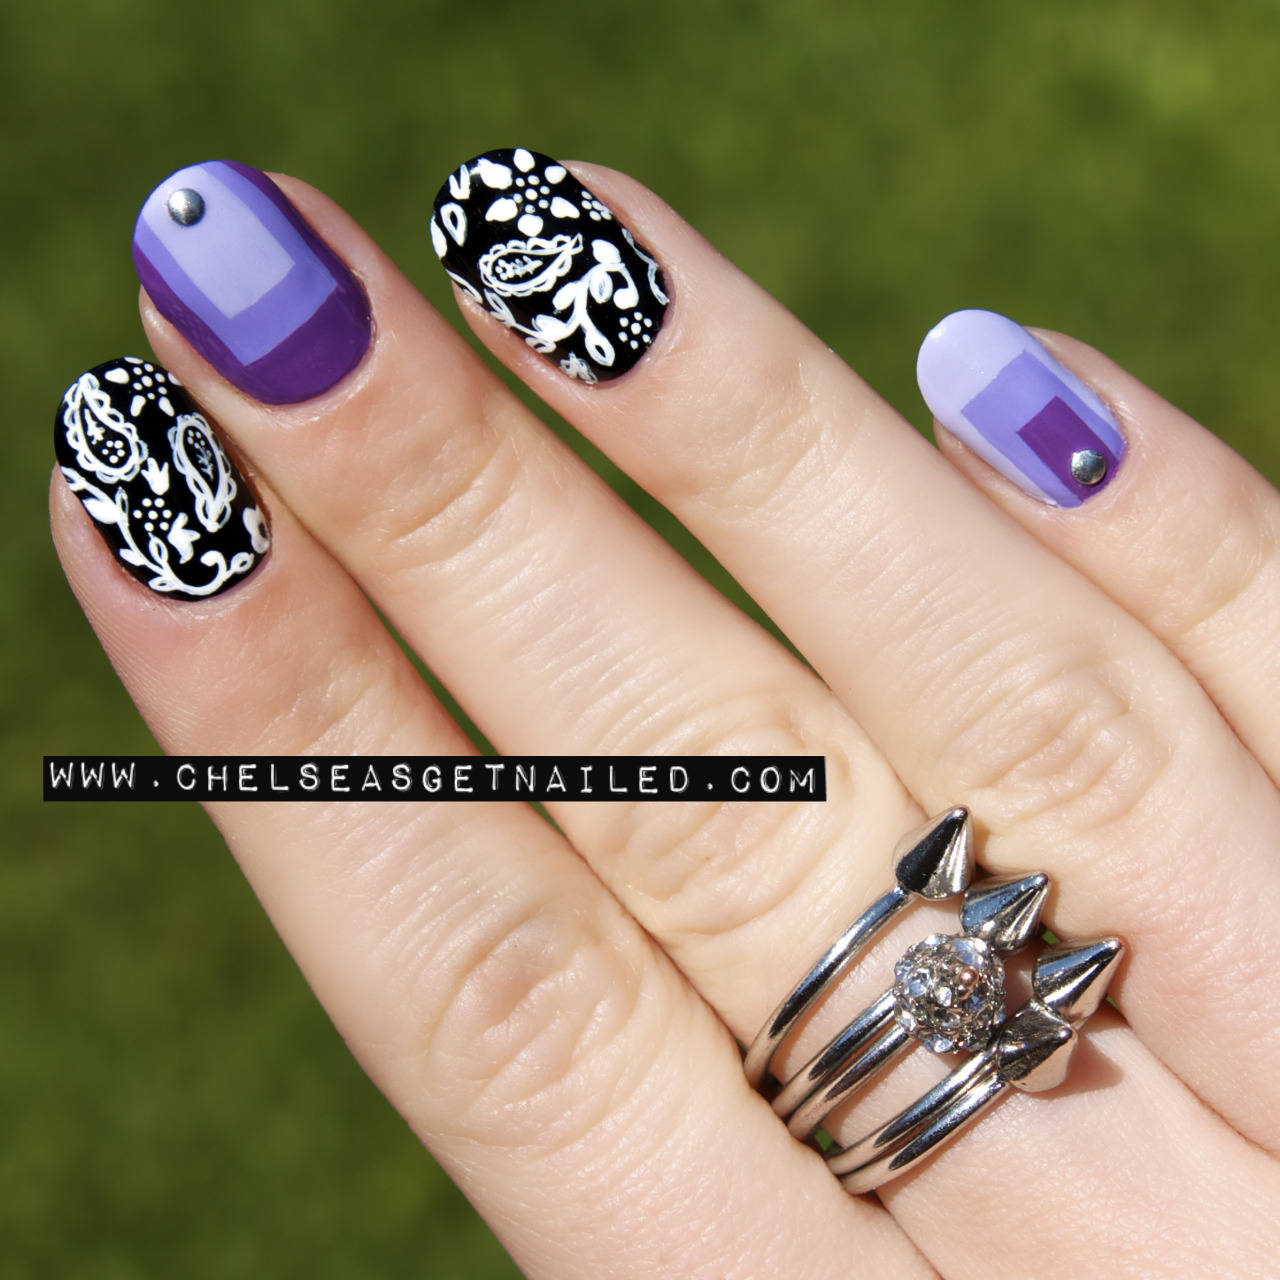 getnail-d:  Paisley + Colorblock Nails - see the post here for all the colors used!  Those square color block nails